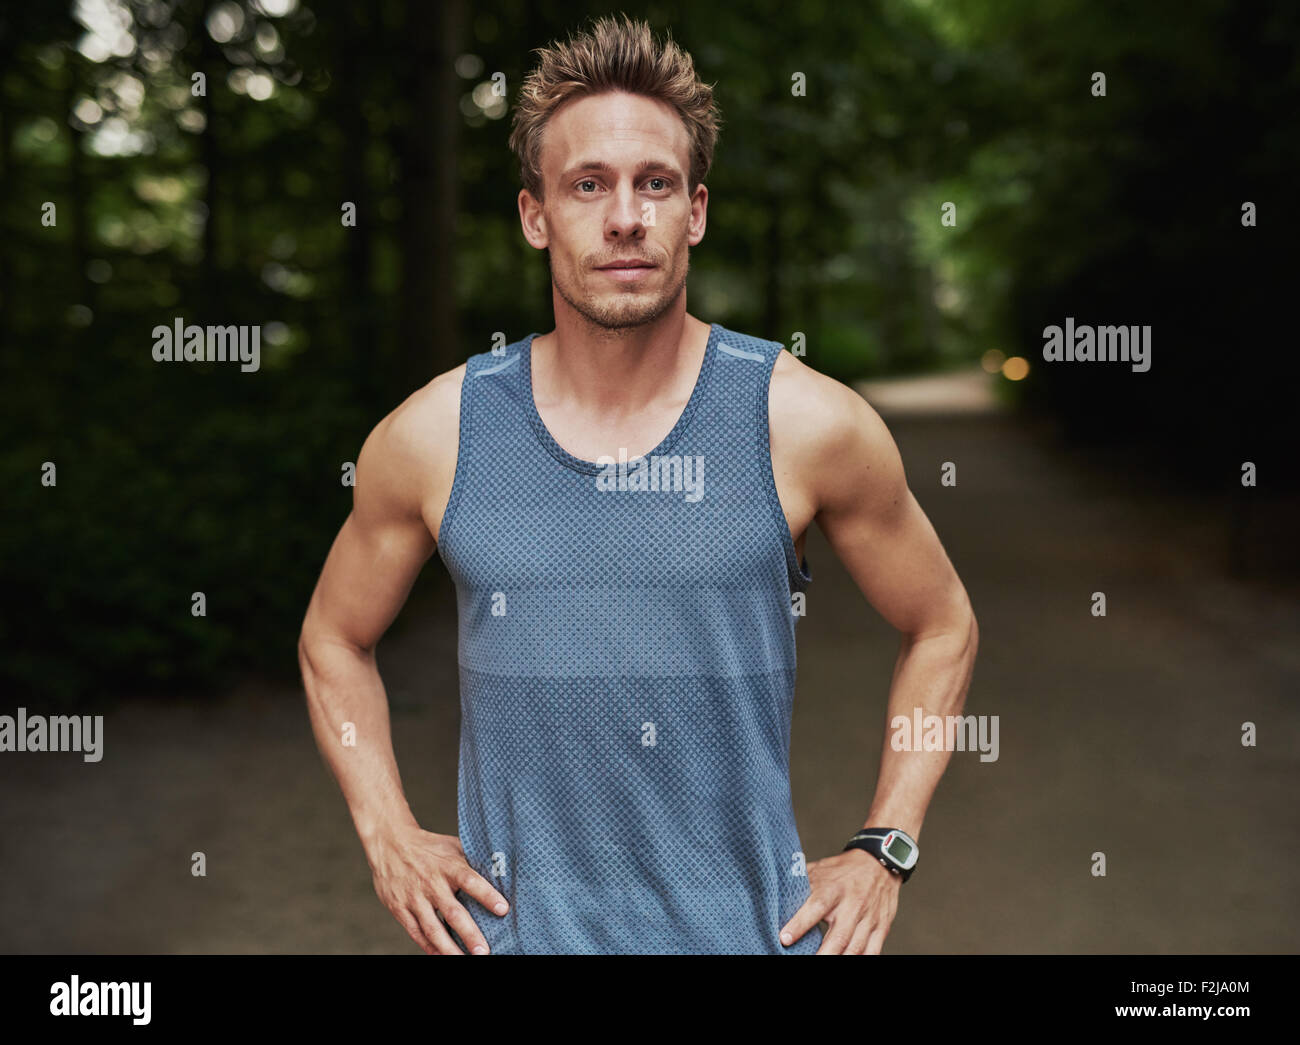 Half Body Shot of an Athletic Young Man Standing at the Park with Hands on Waist and Looking Into the Distance. - Stock Image